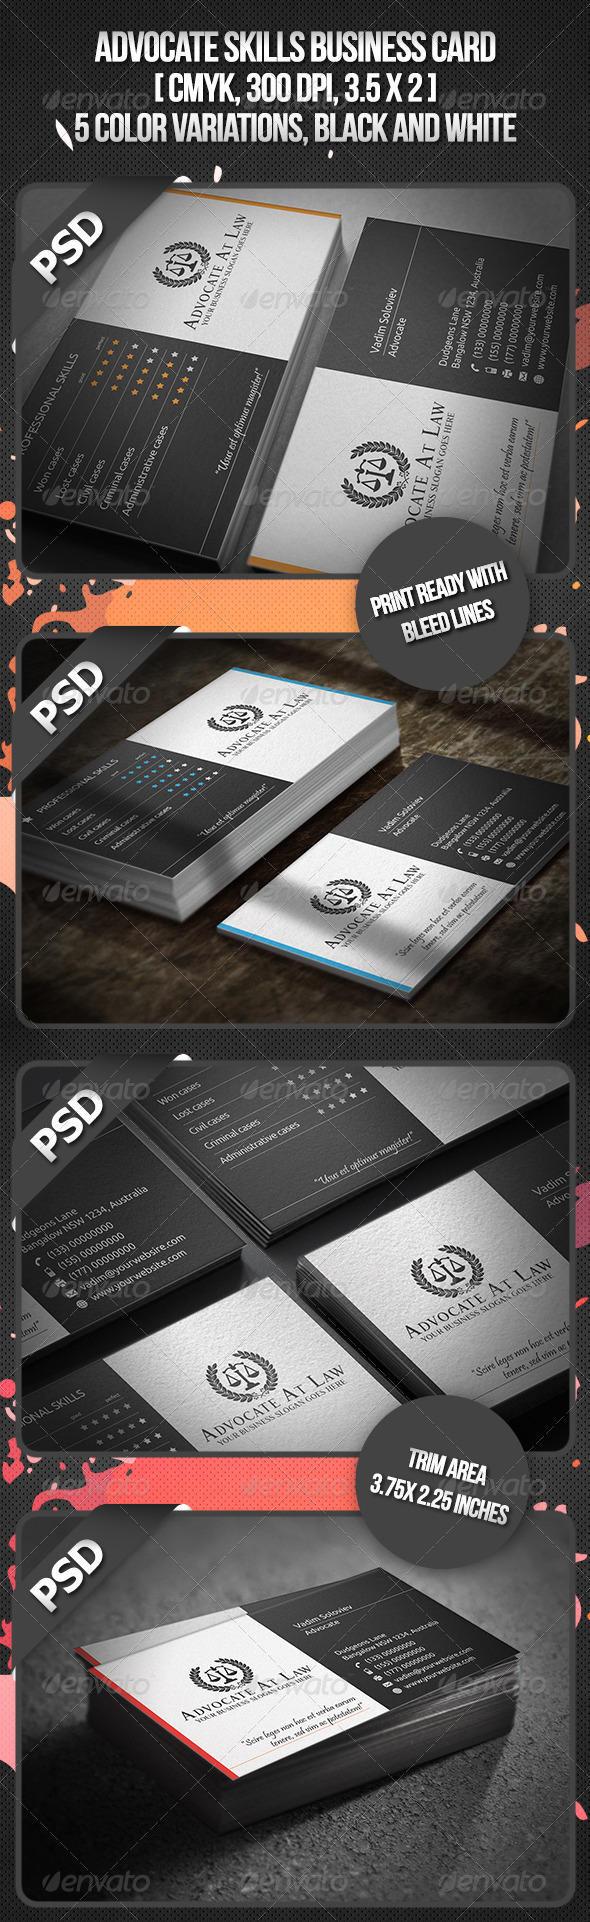 GraphicRiver Advocate Skills Business Card 3951724